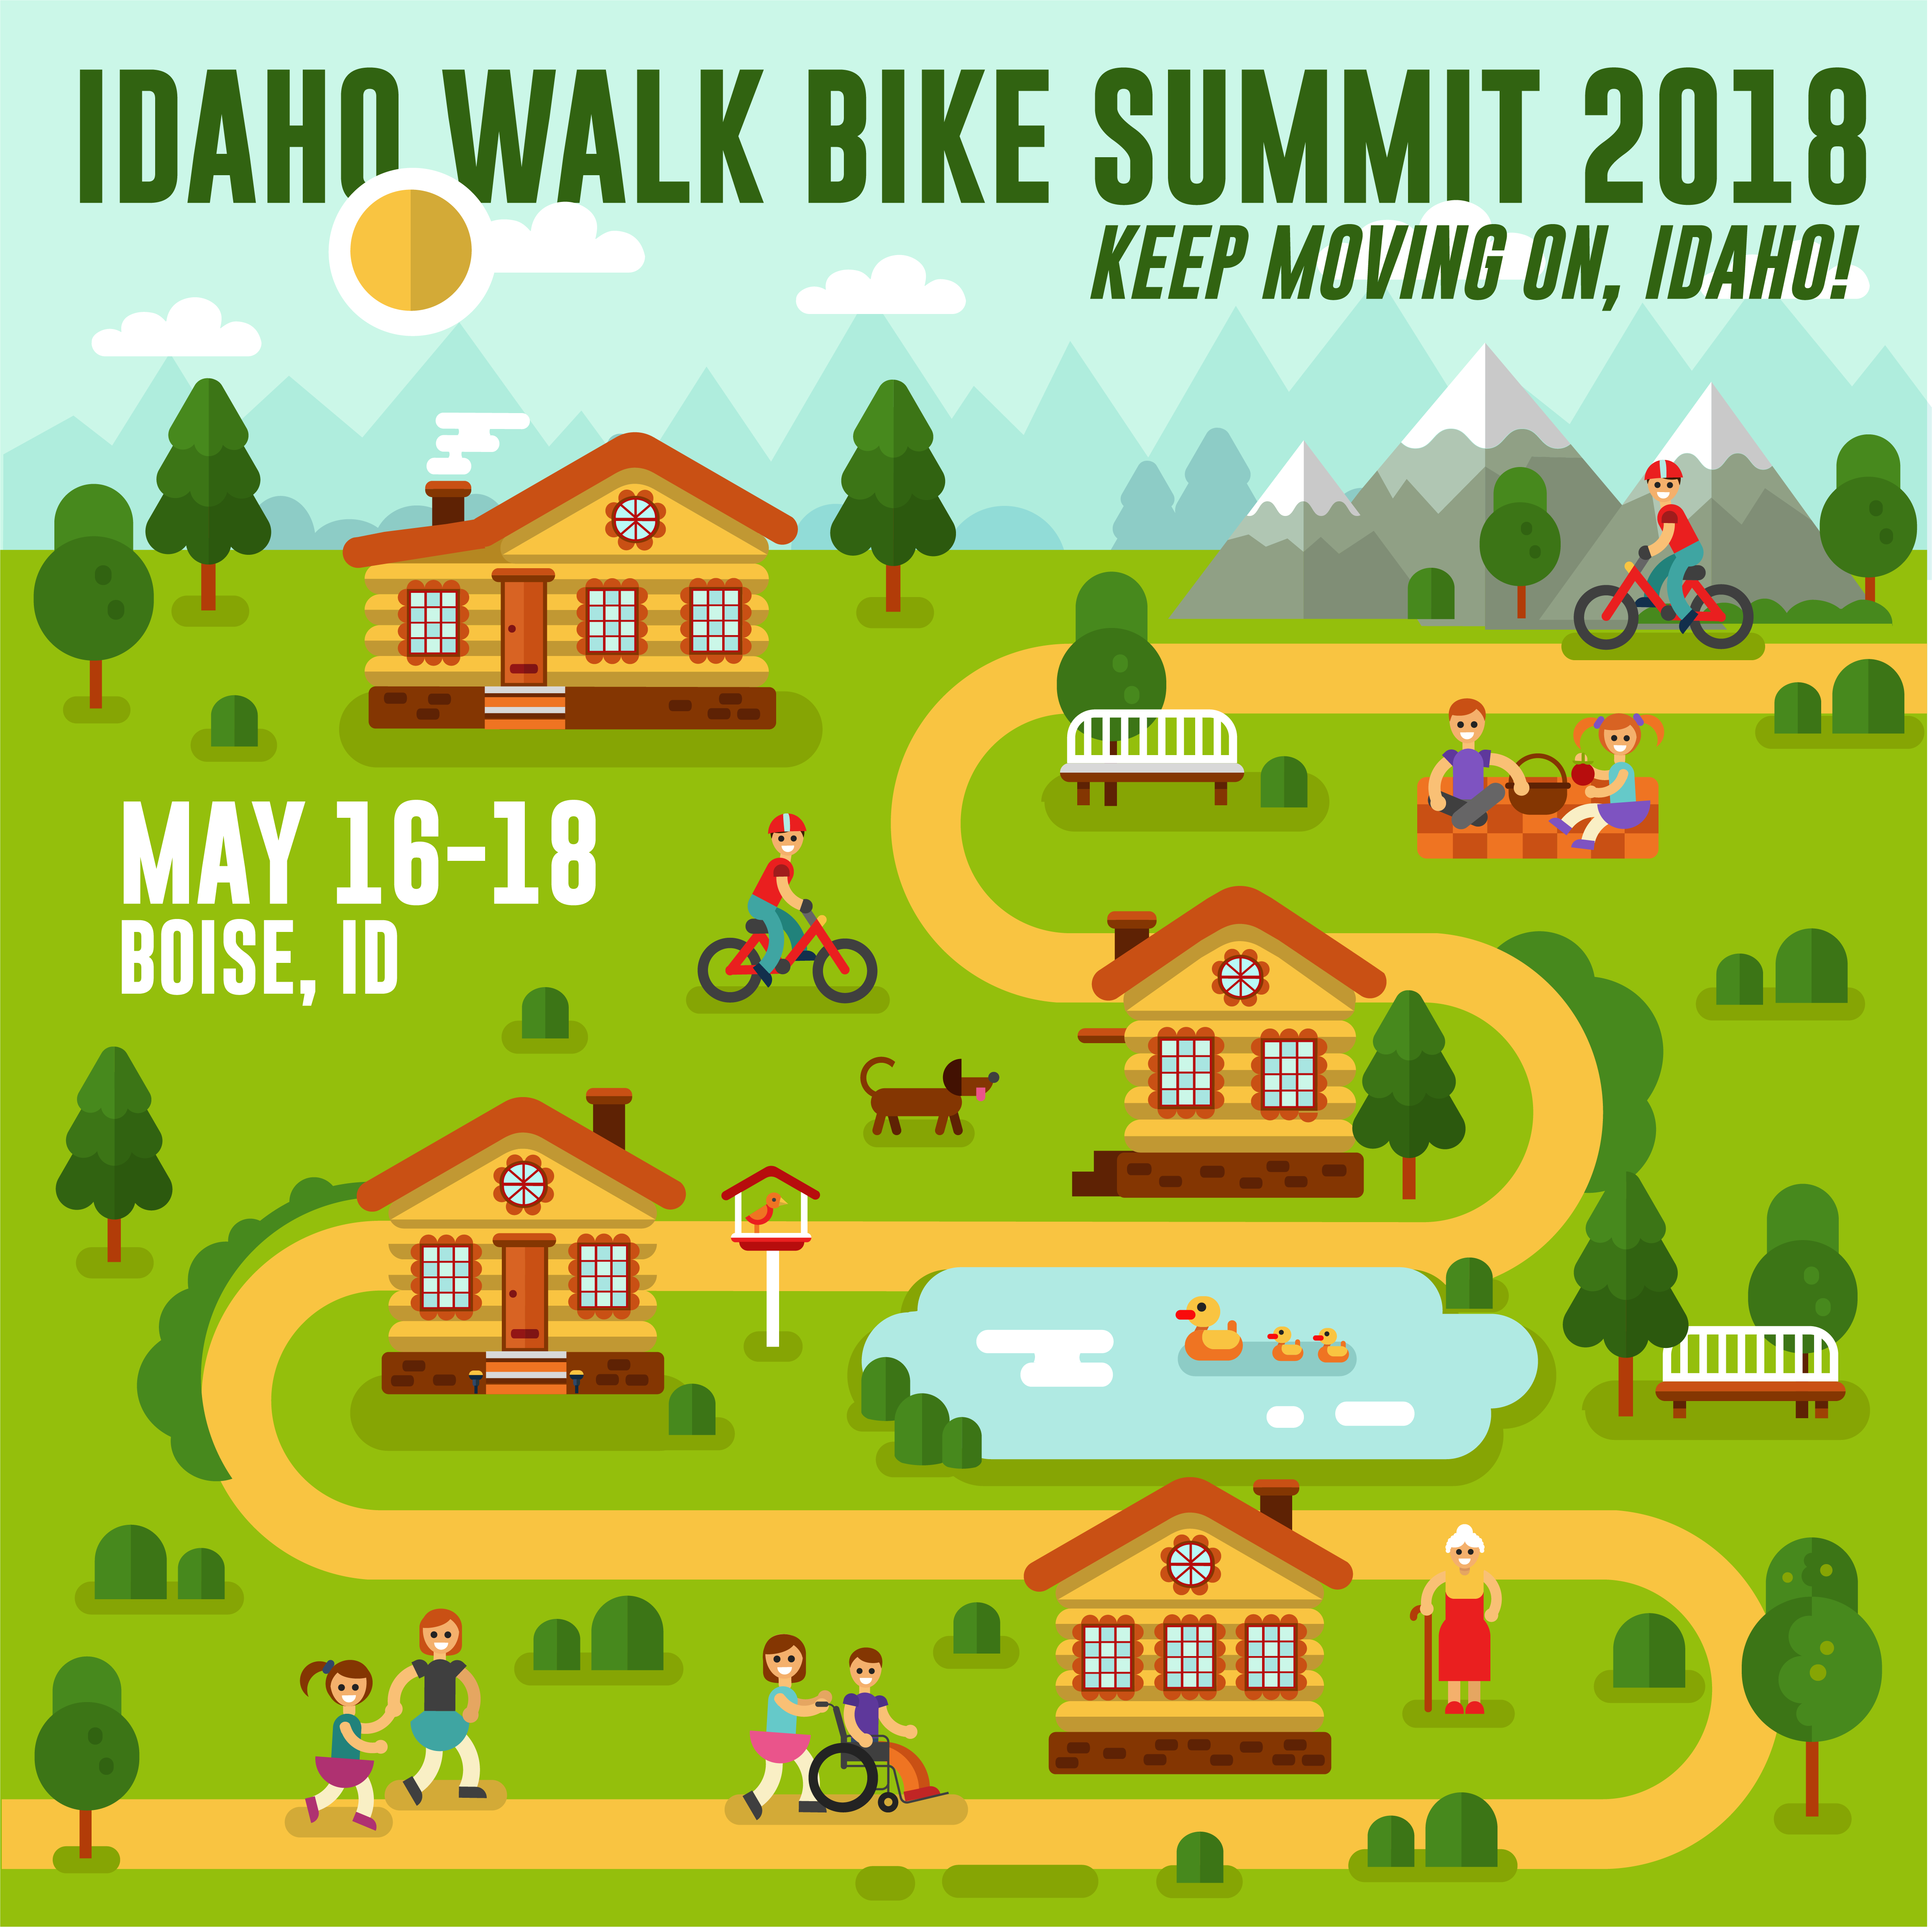 Russ Roca of the Path Less Pedaled will highlight the 2018 Idaho Walk Bike Summit in May. For more, see pathlesspedaled.com Photo courtesy Russ Roca